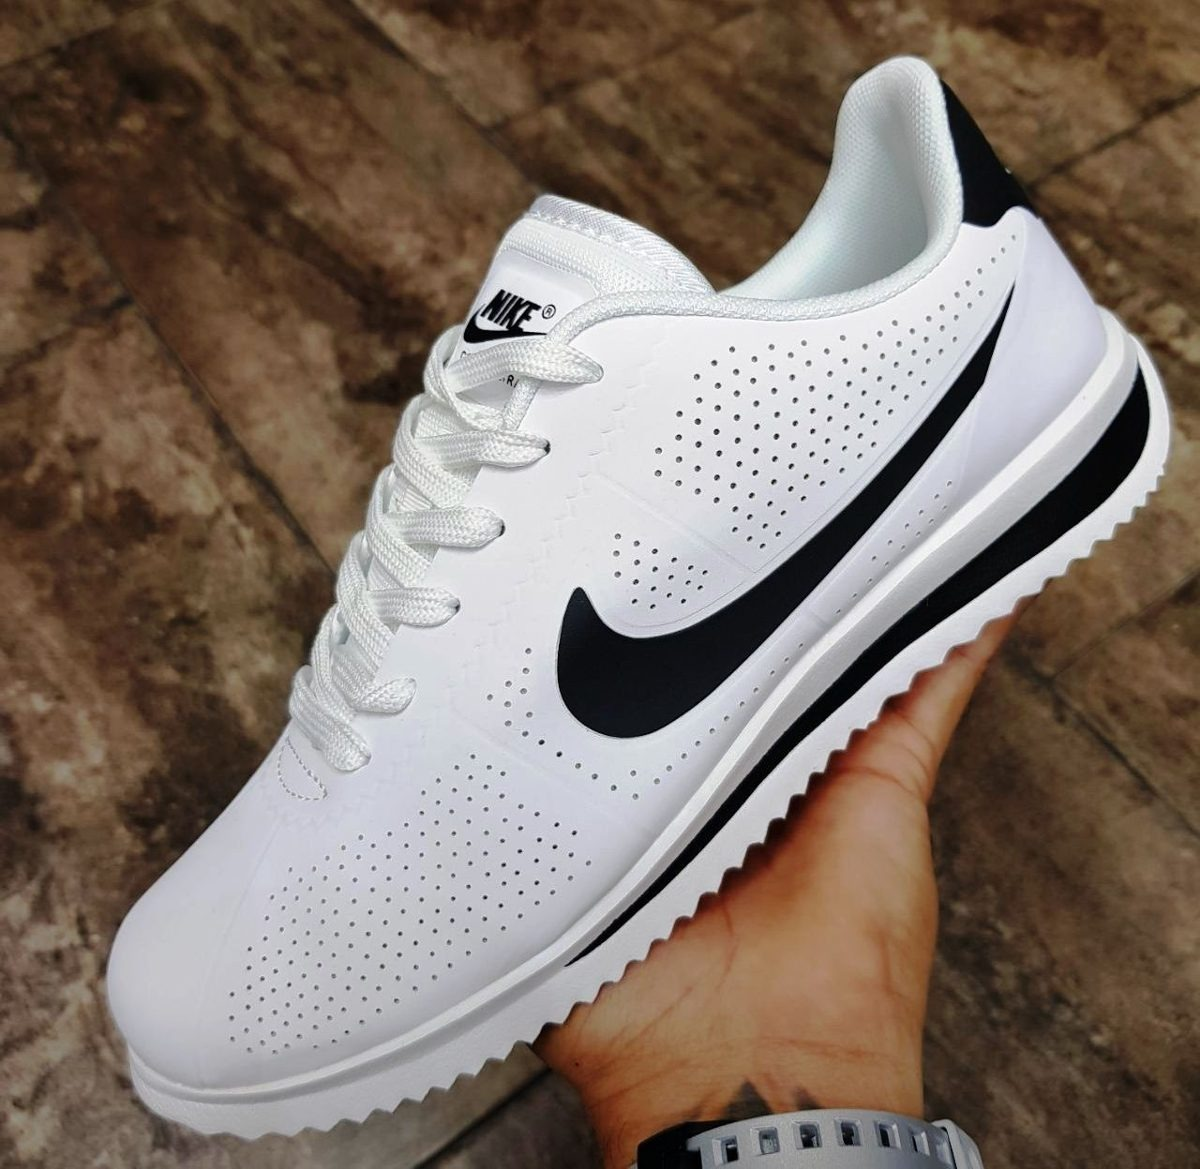 low priced 78170 a3e57 ... coupon code for tenis zapatillas nike cortez blanco negro hombre.  cargando zoom. 13c29 4d67b